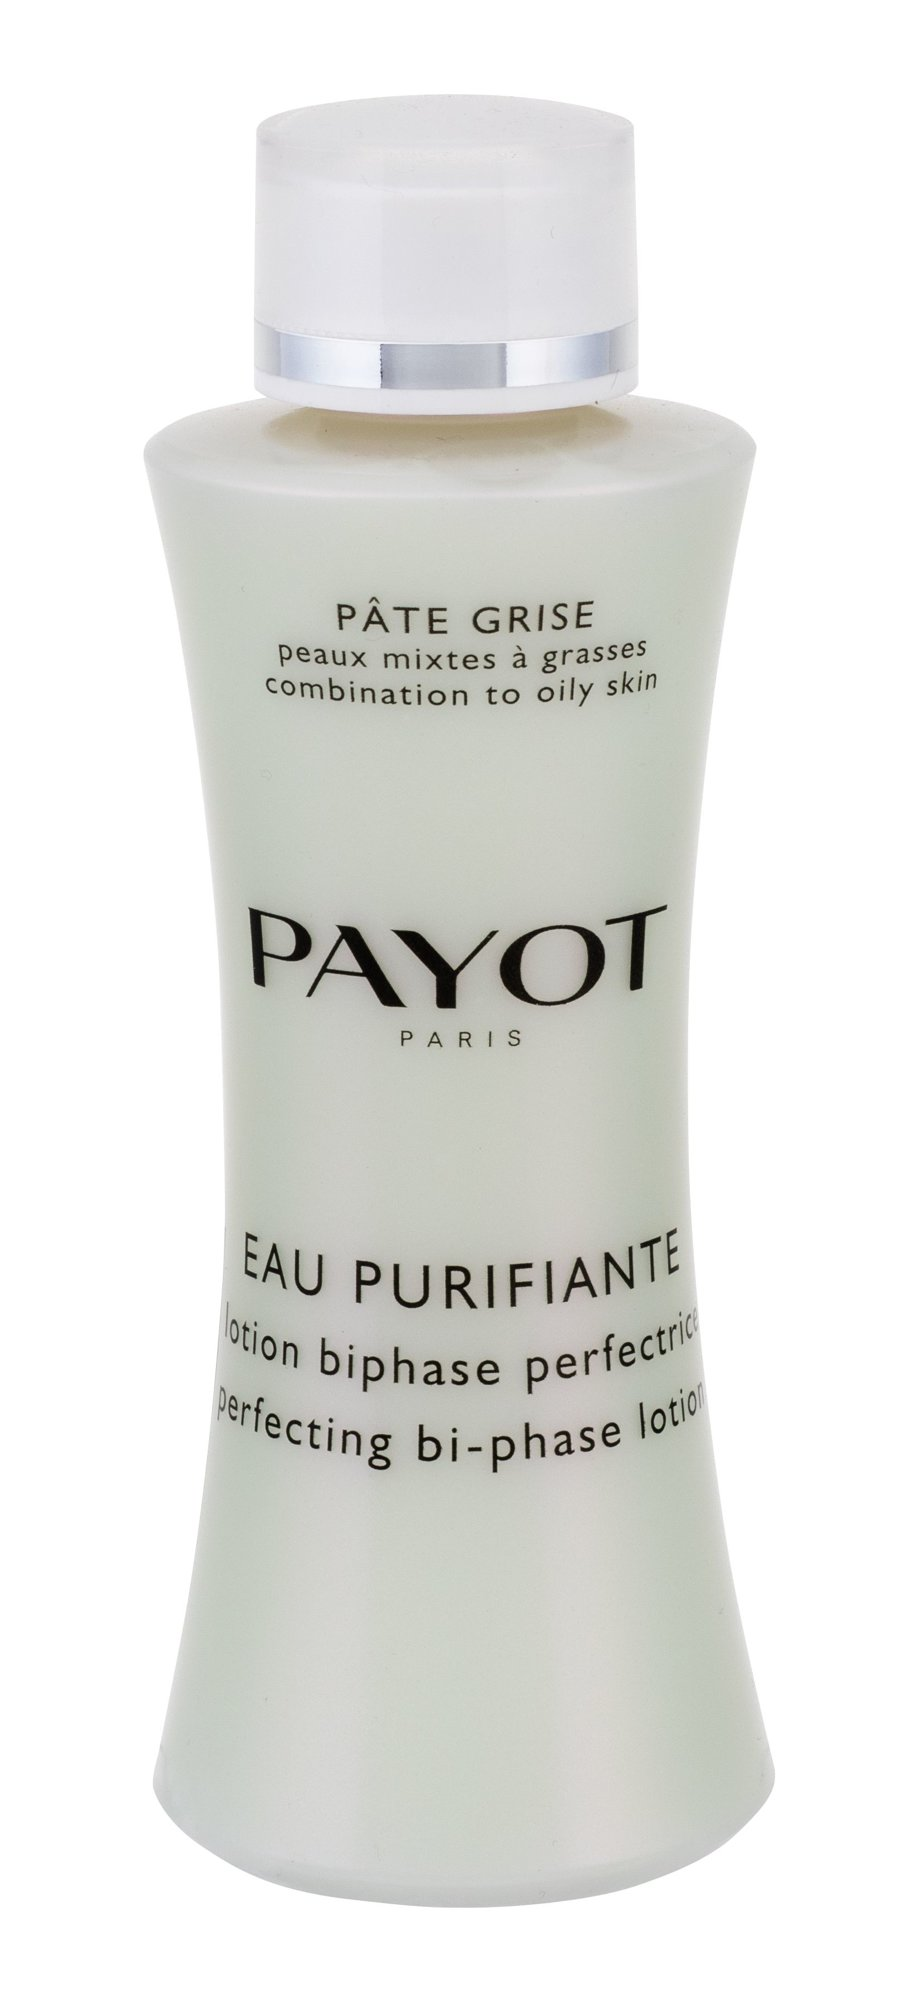 PAYOT Pate Grise Cosmetic 200ml